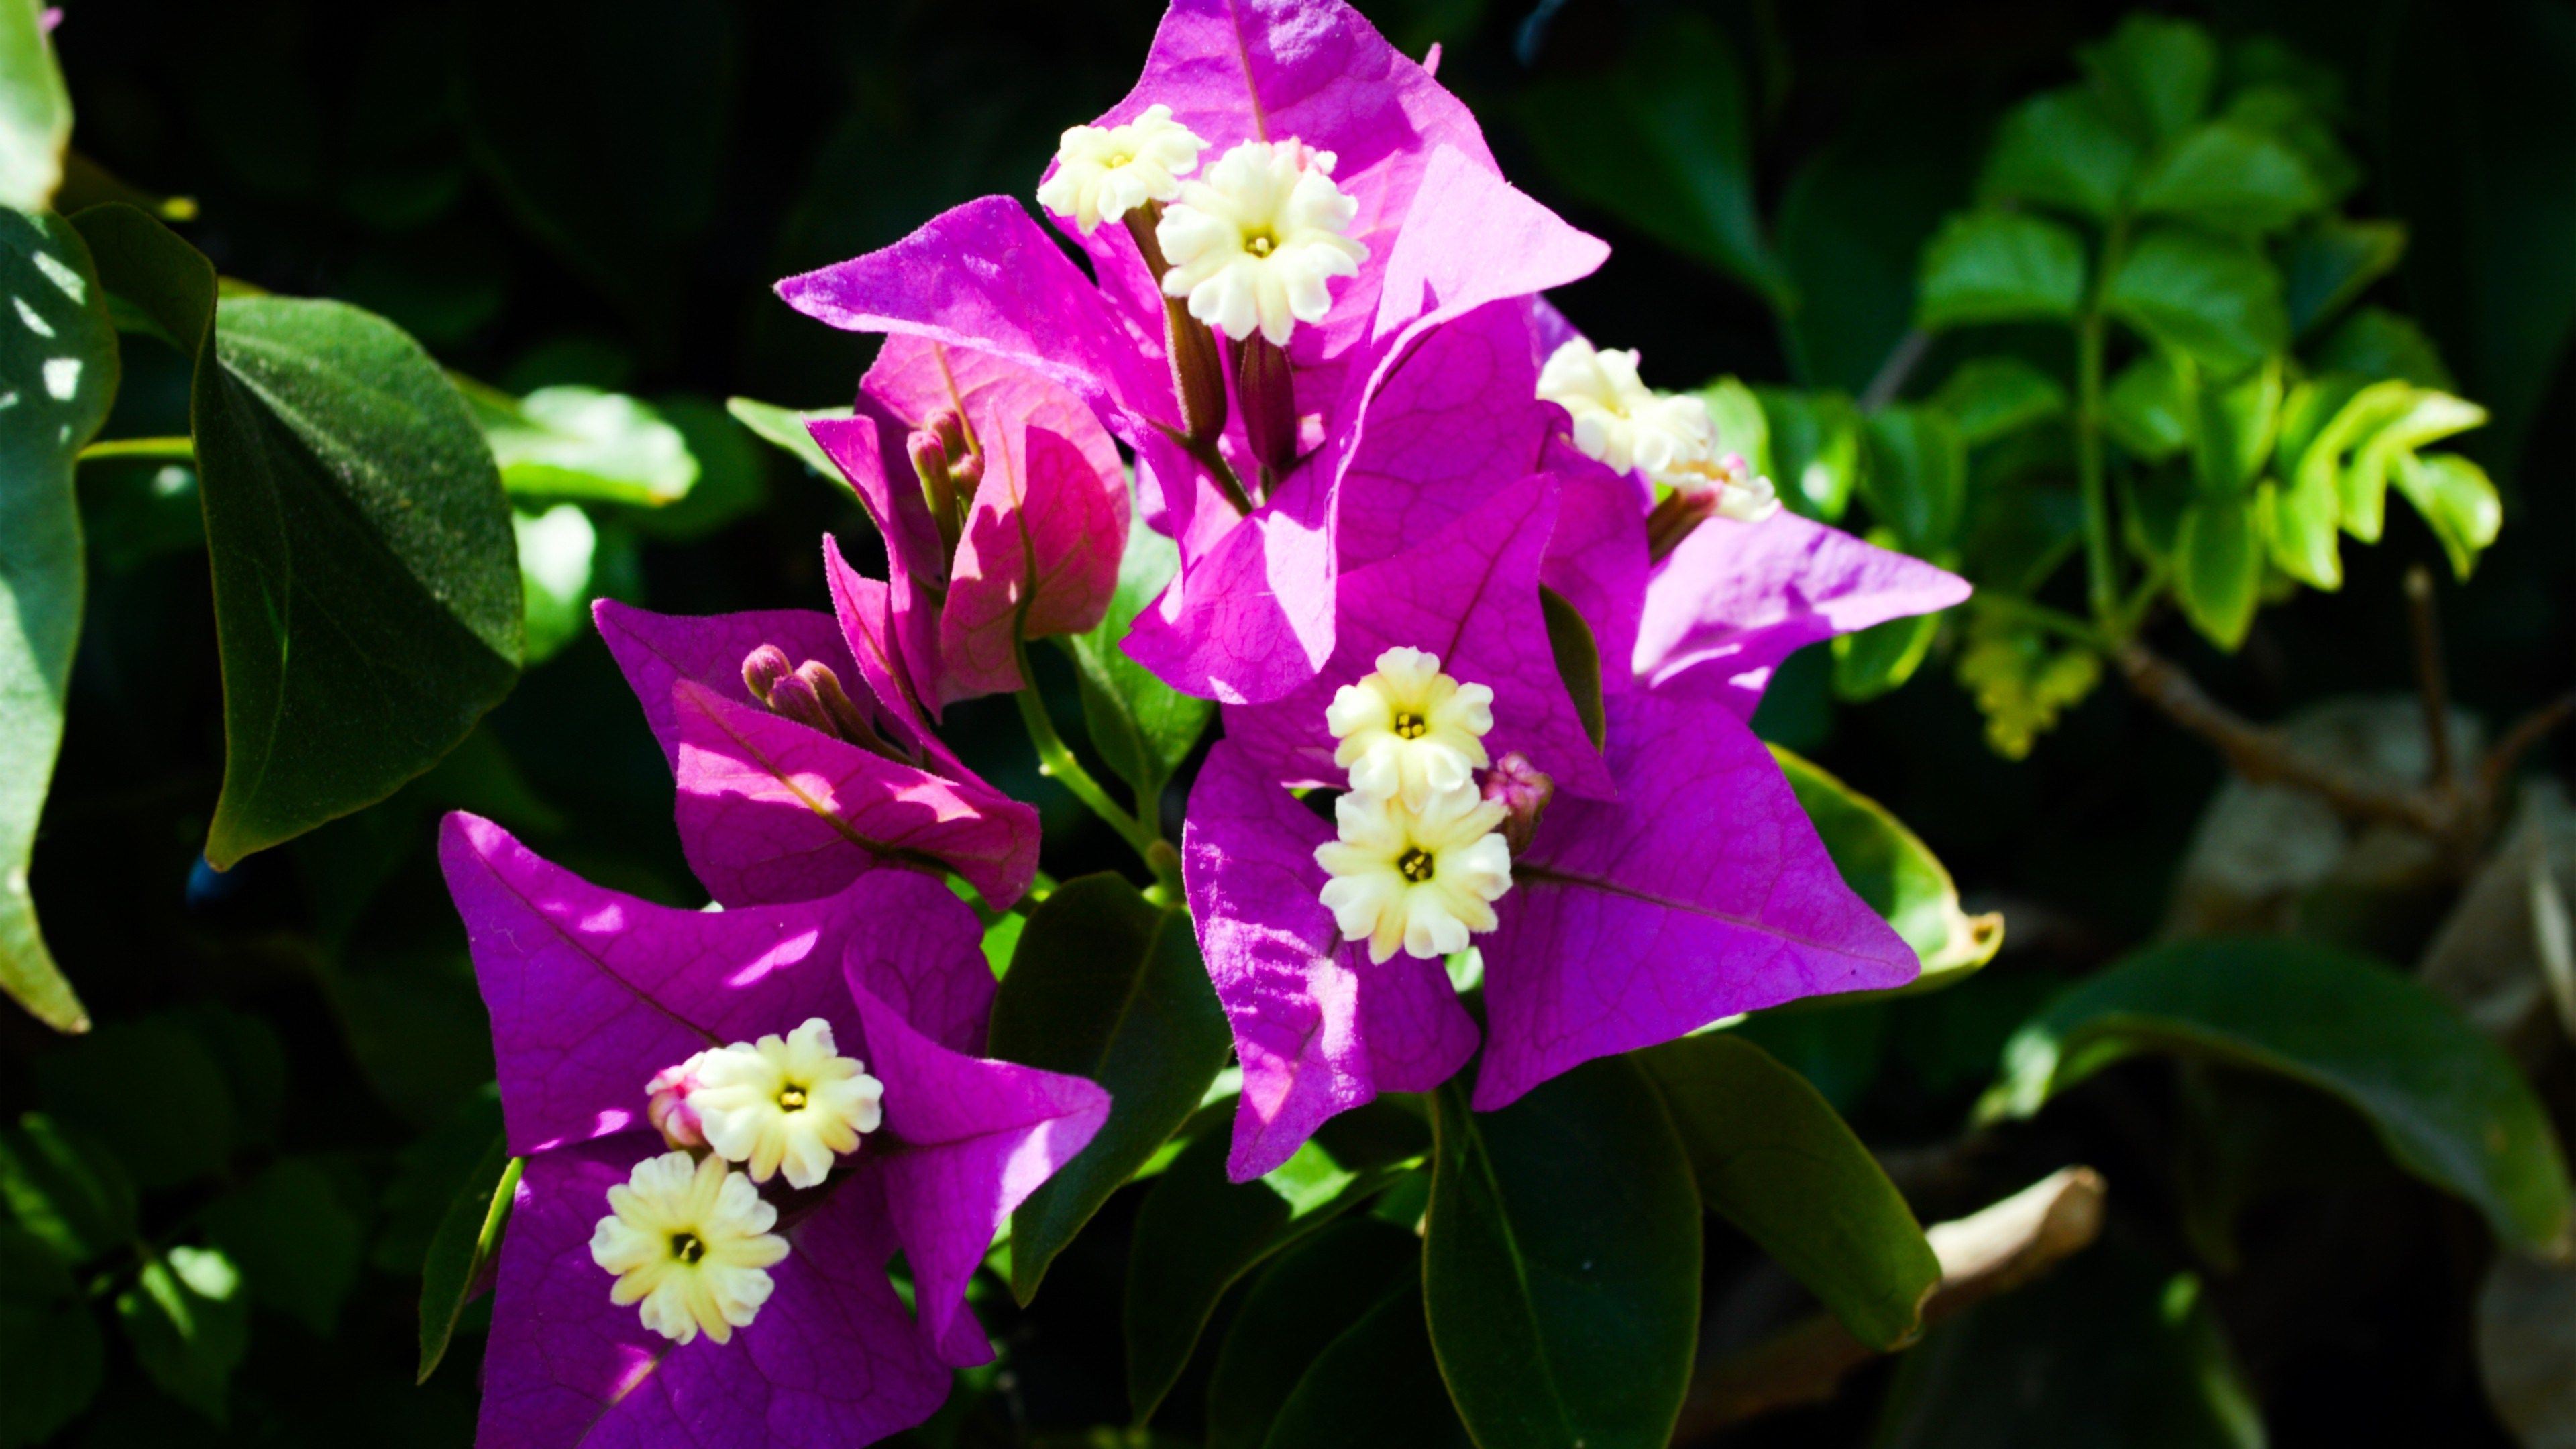 Bougainvillea Wallpaper 4k Wallpaper Bougainvillea 3840x2160 Wallpaperscreator